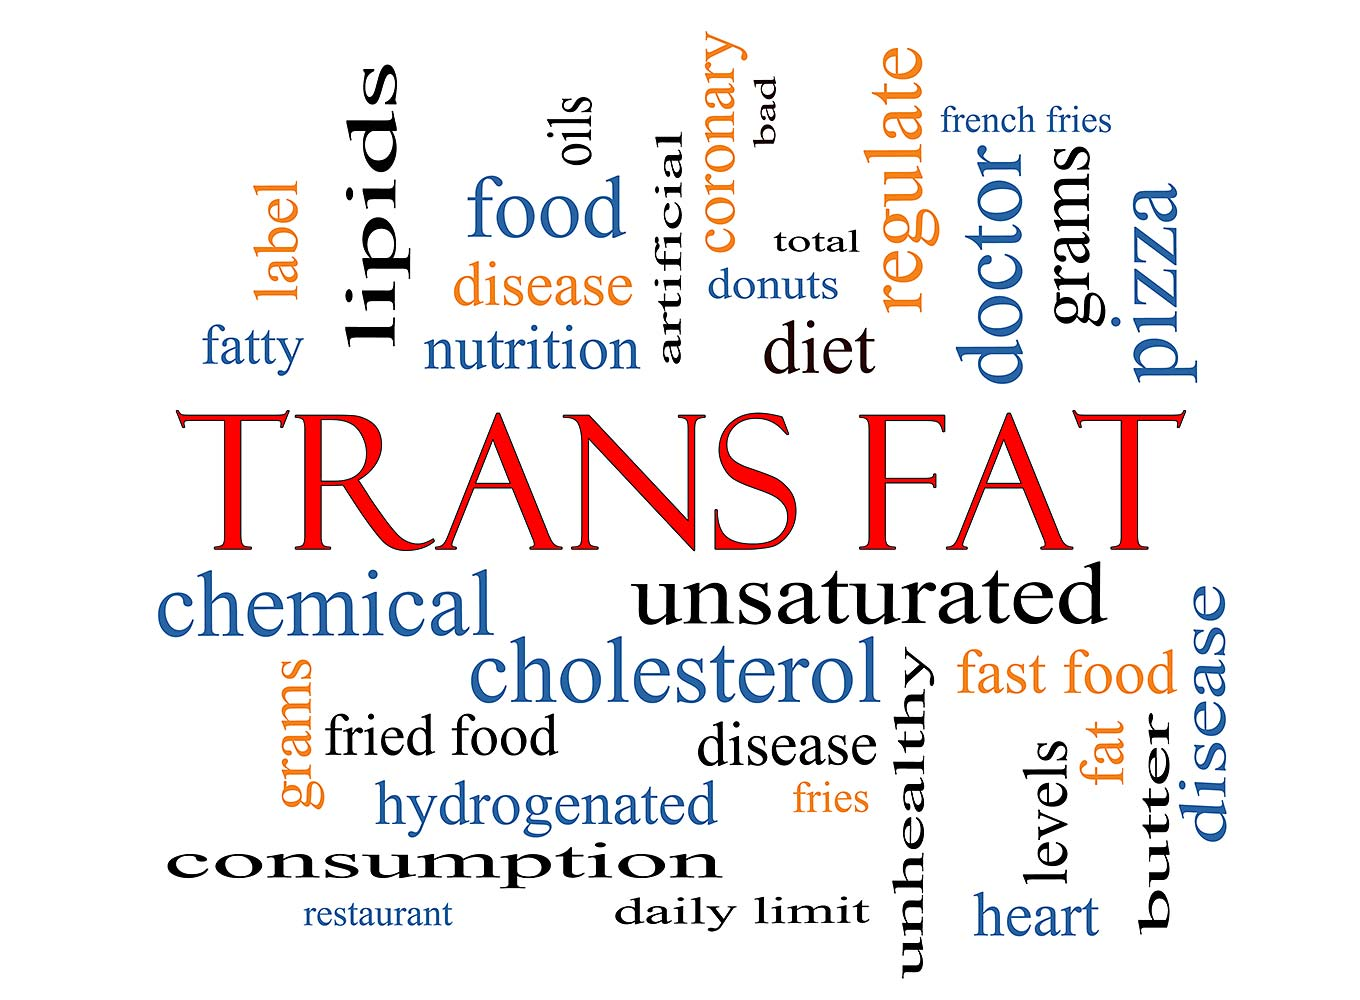 Get Rid of Partially Hydrogenated Oils (Trans Fats)!